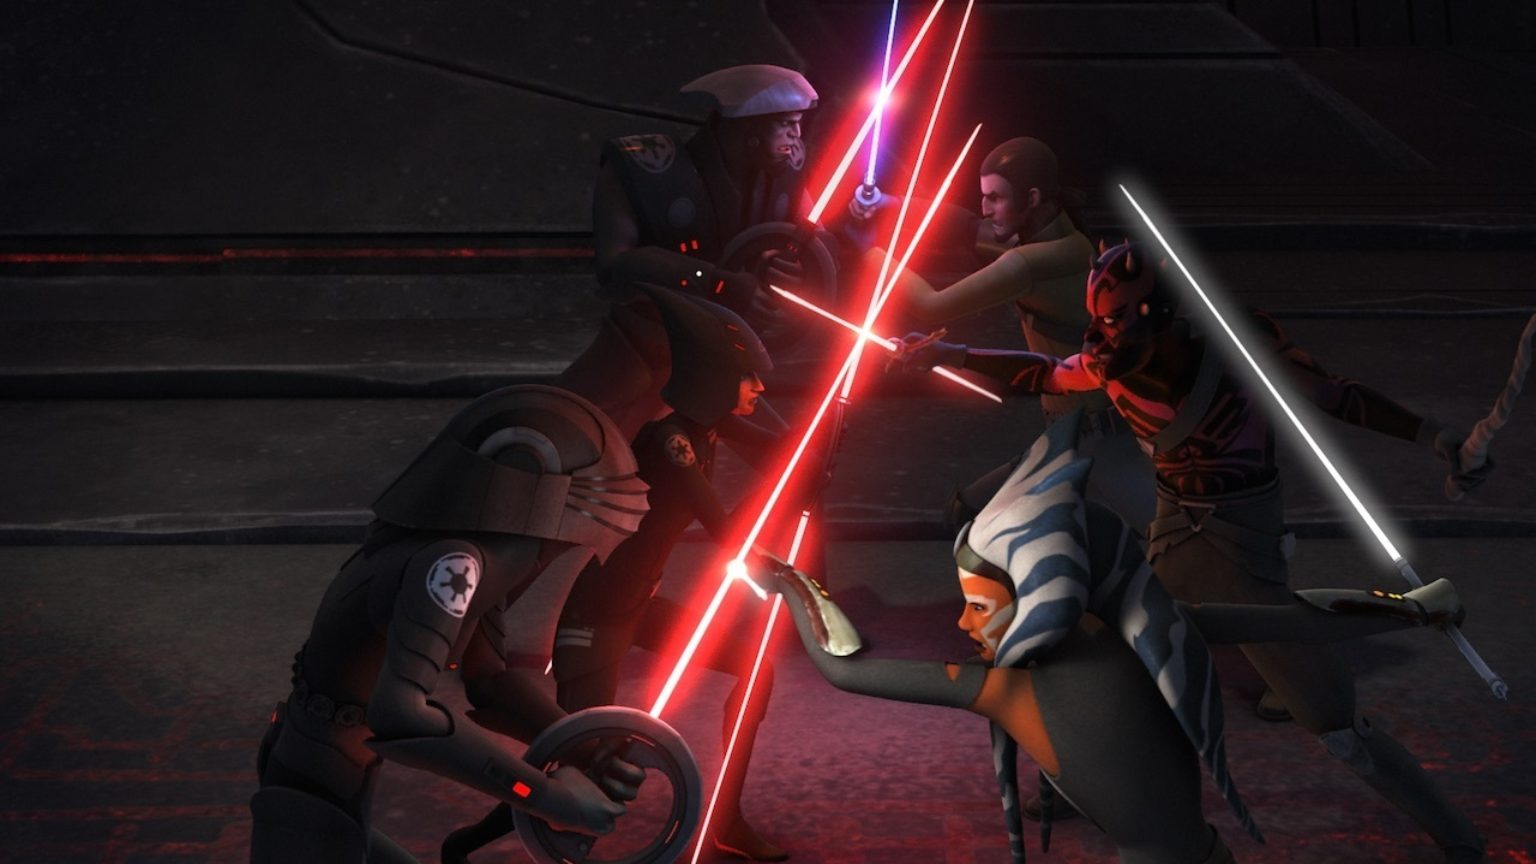 Star Wars Rebels - Ahsoka, Kanan, and Maul versus Inquisitors